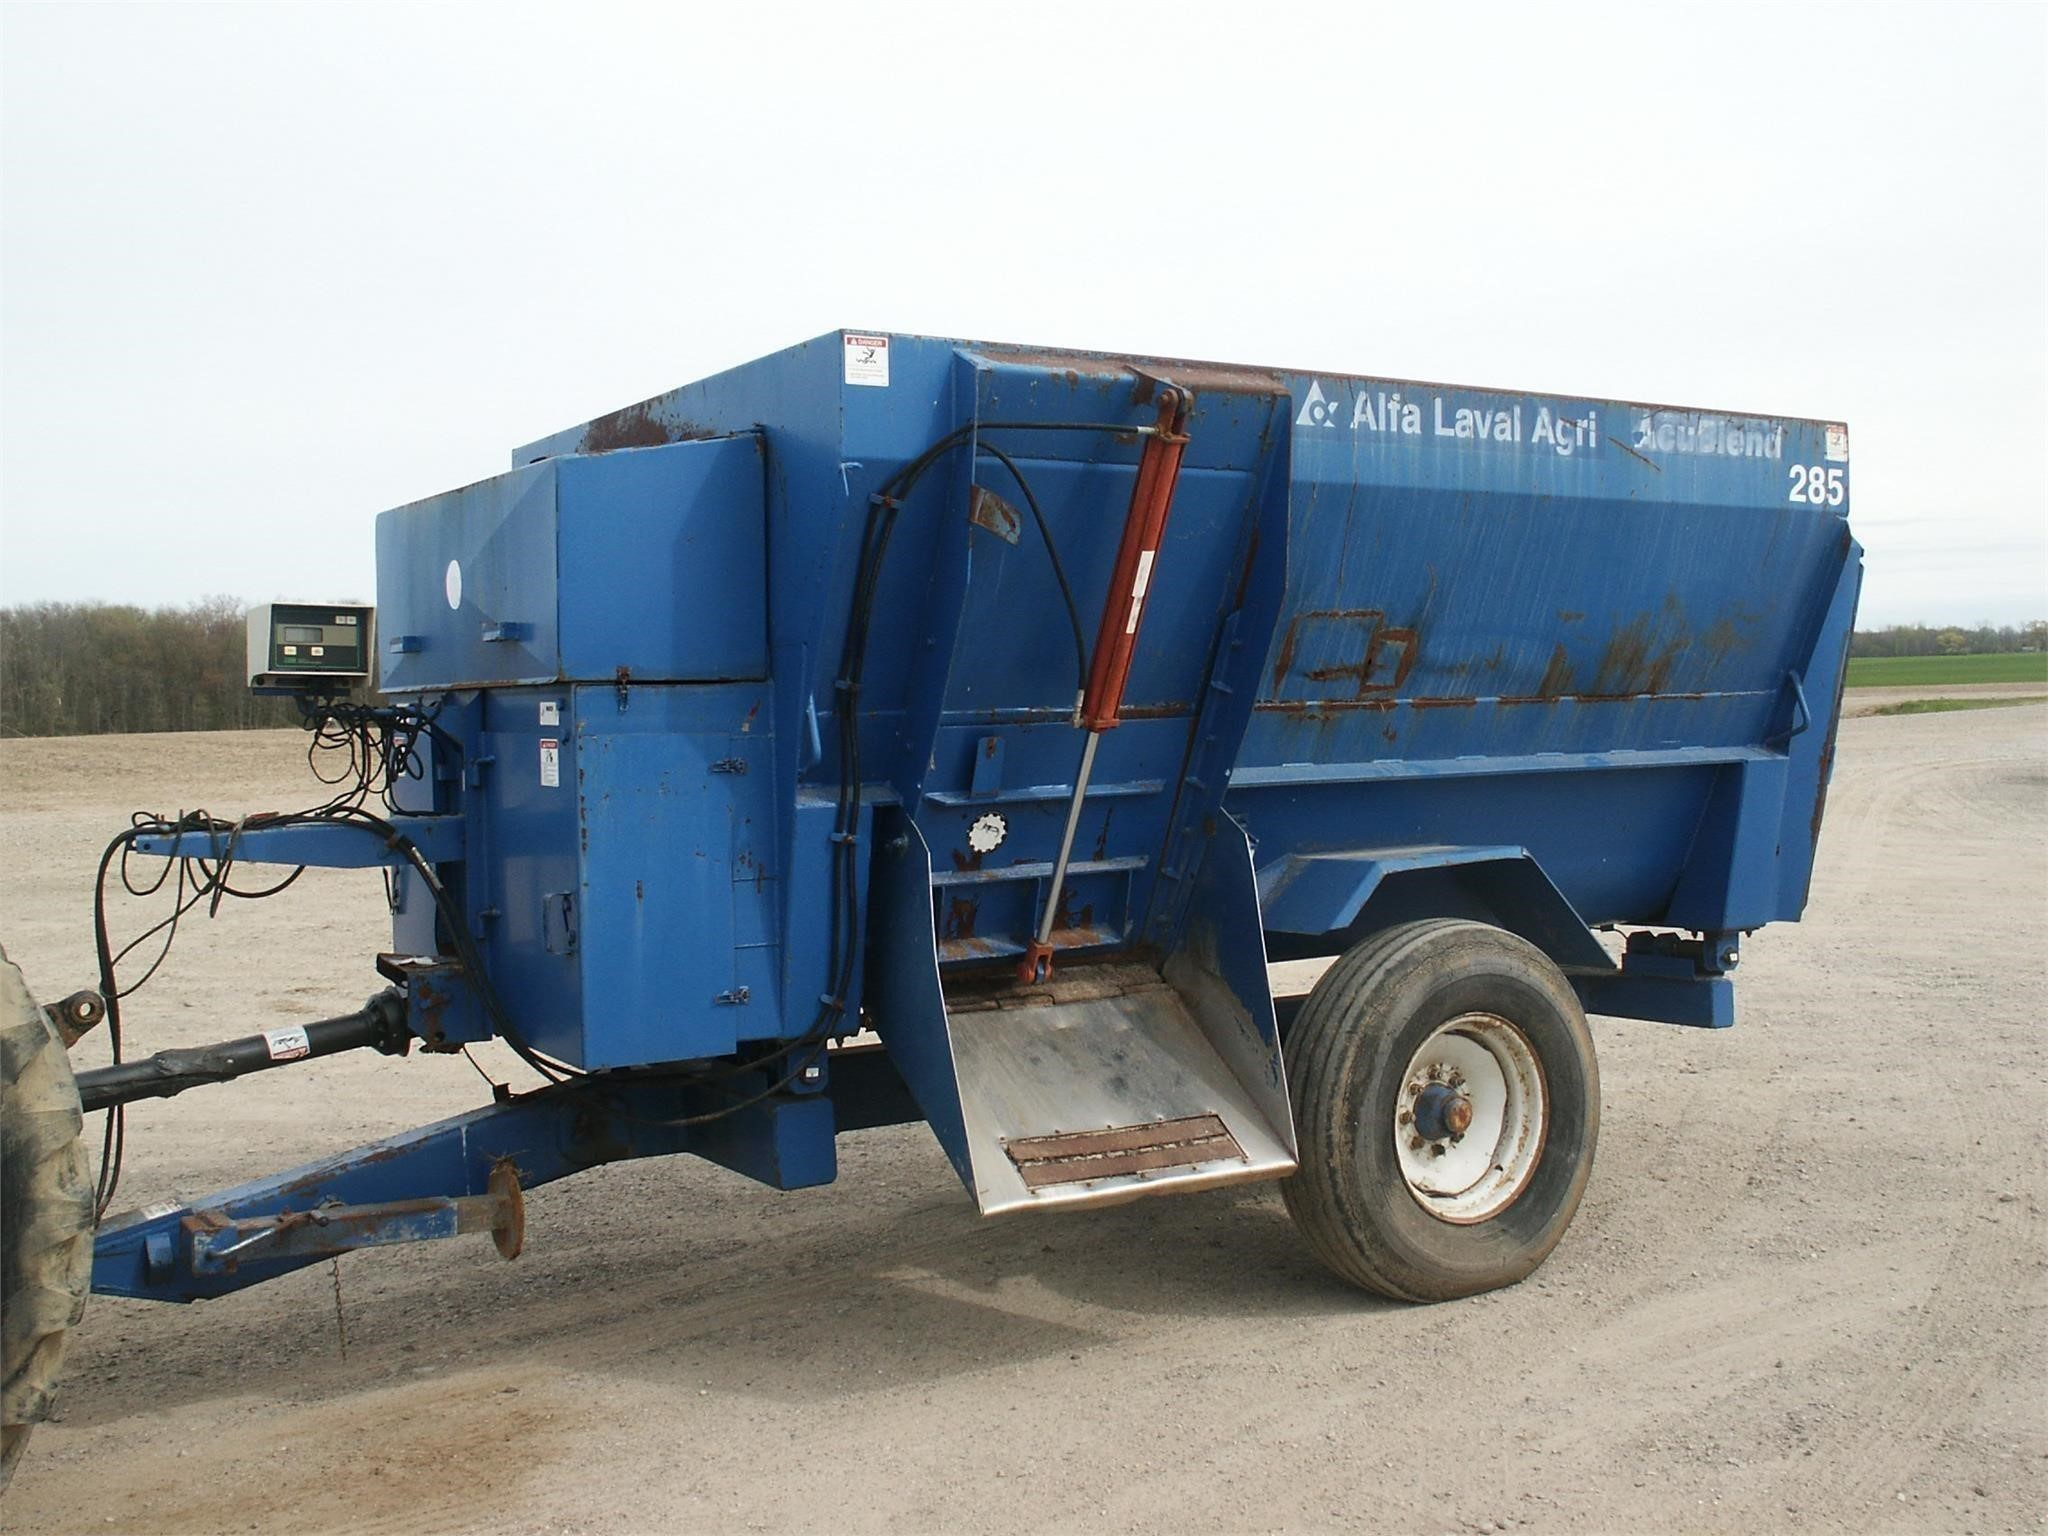 Alfa-Laval Agri 285 Grinders and Mixer